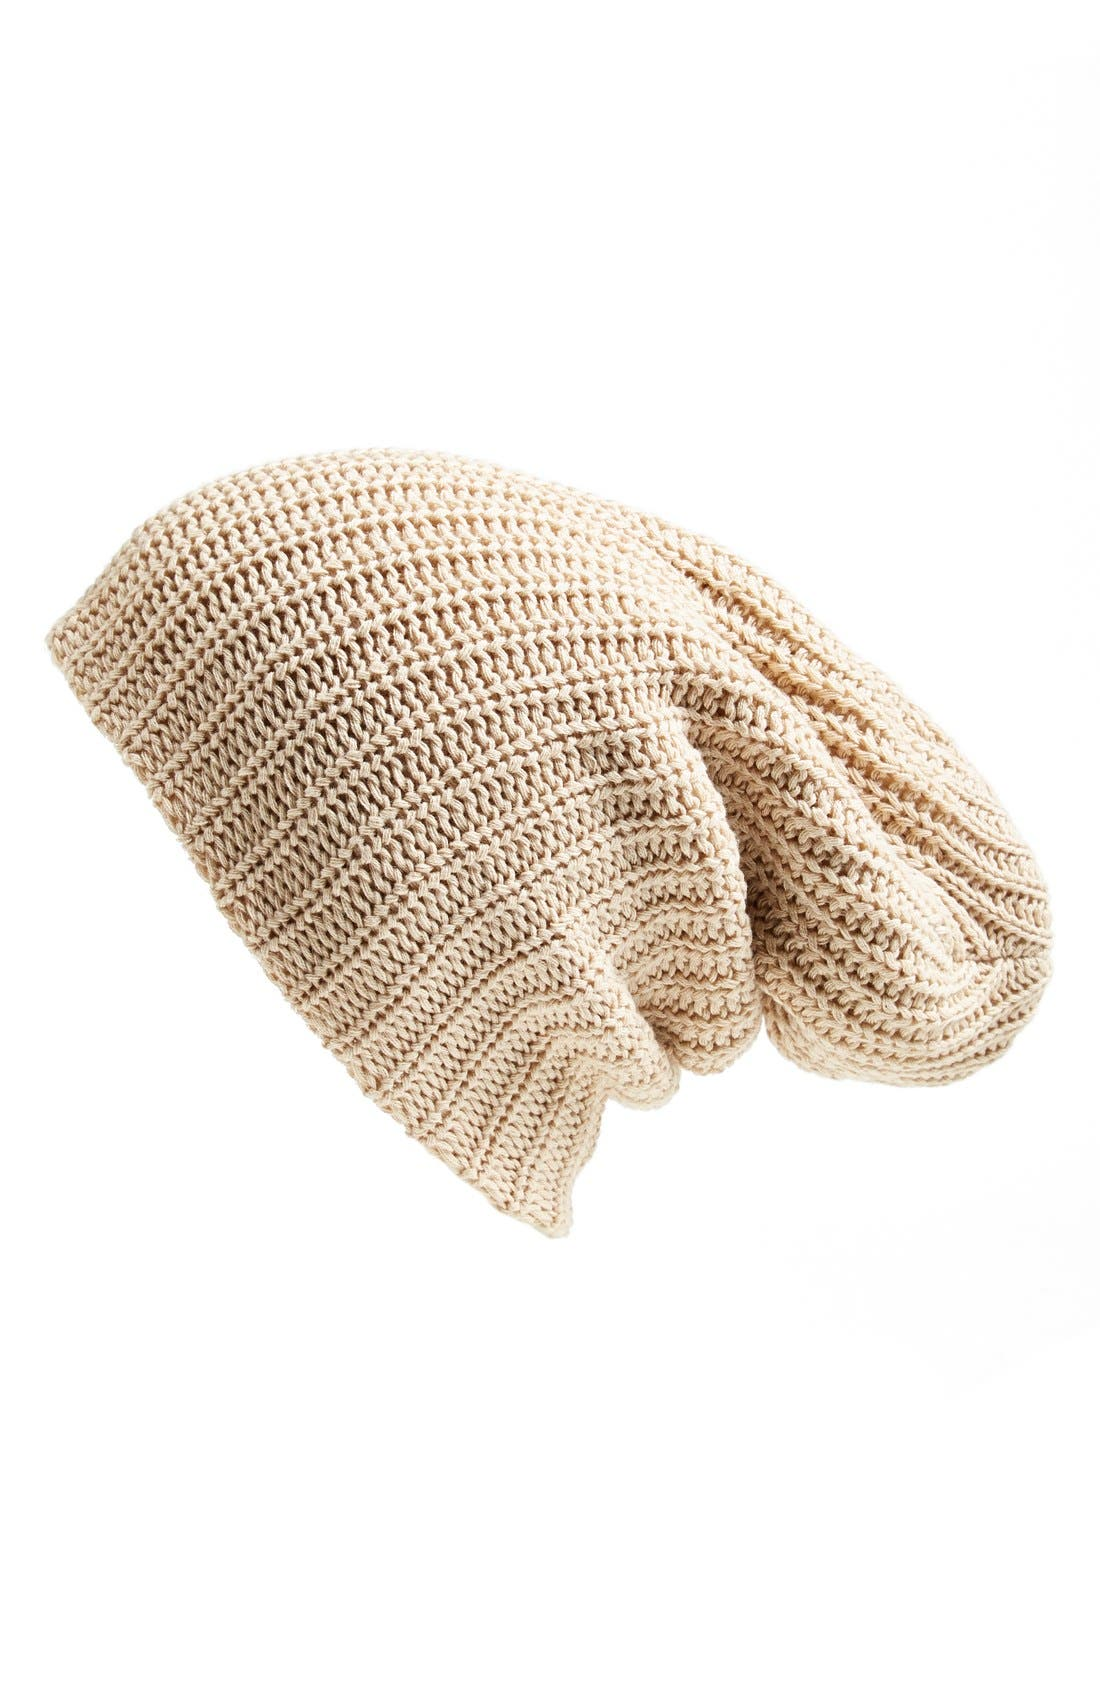 Main Image - Free People 'Capsule' Slouchy Knit Beanie